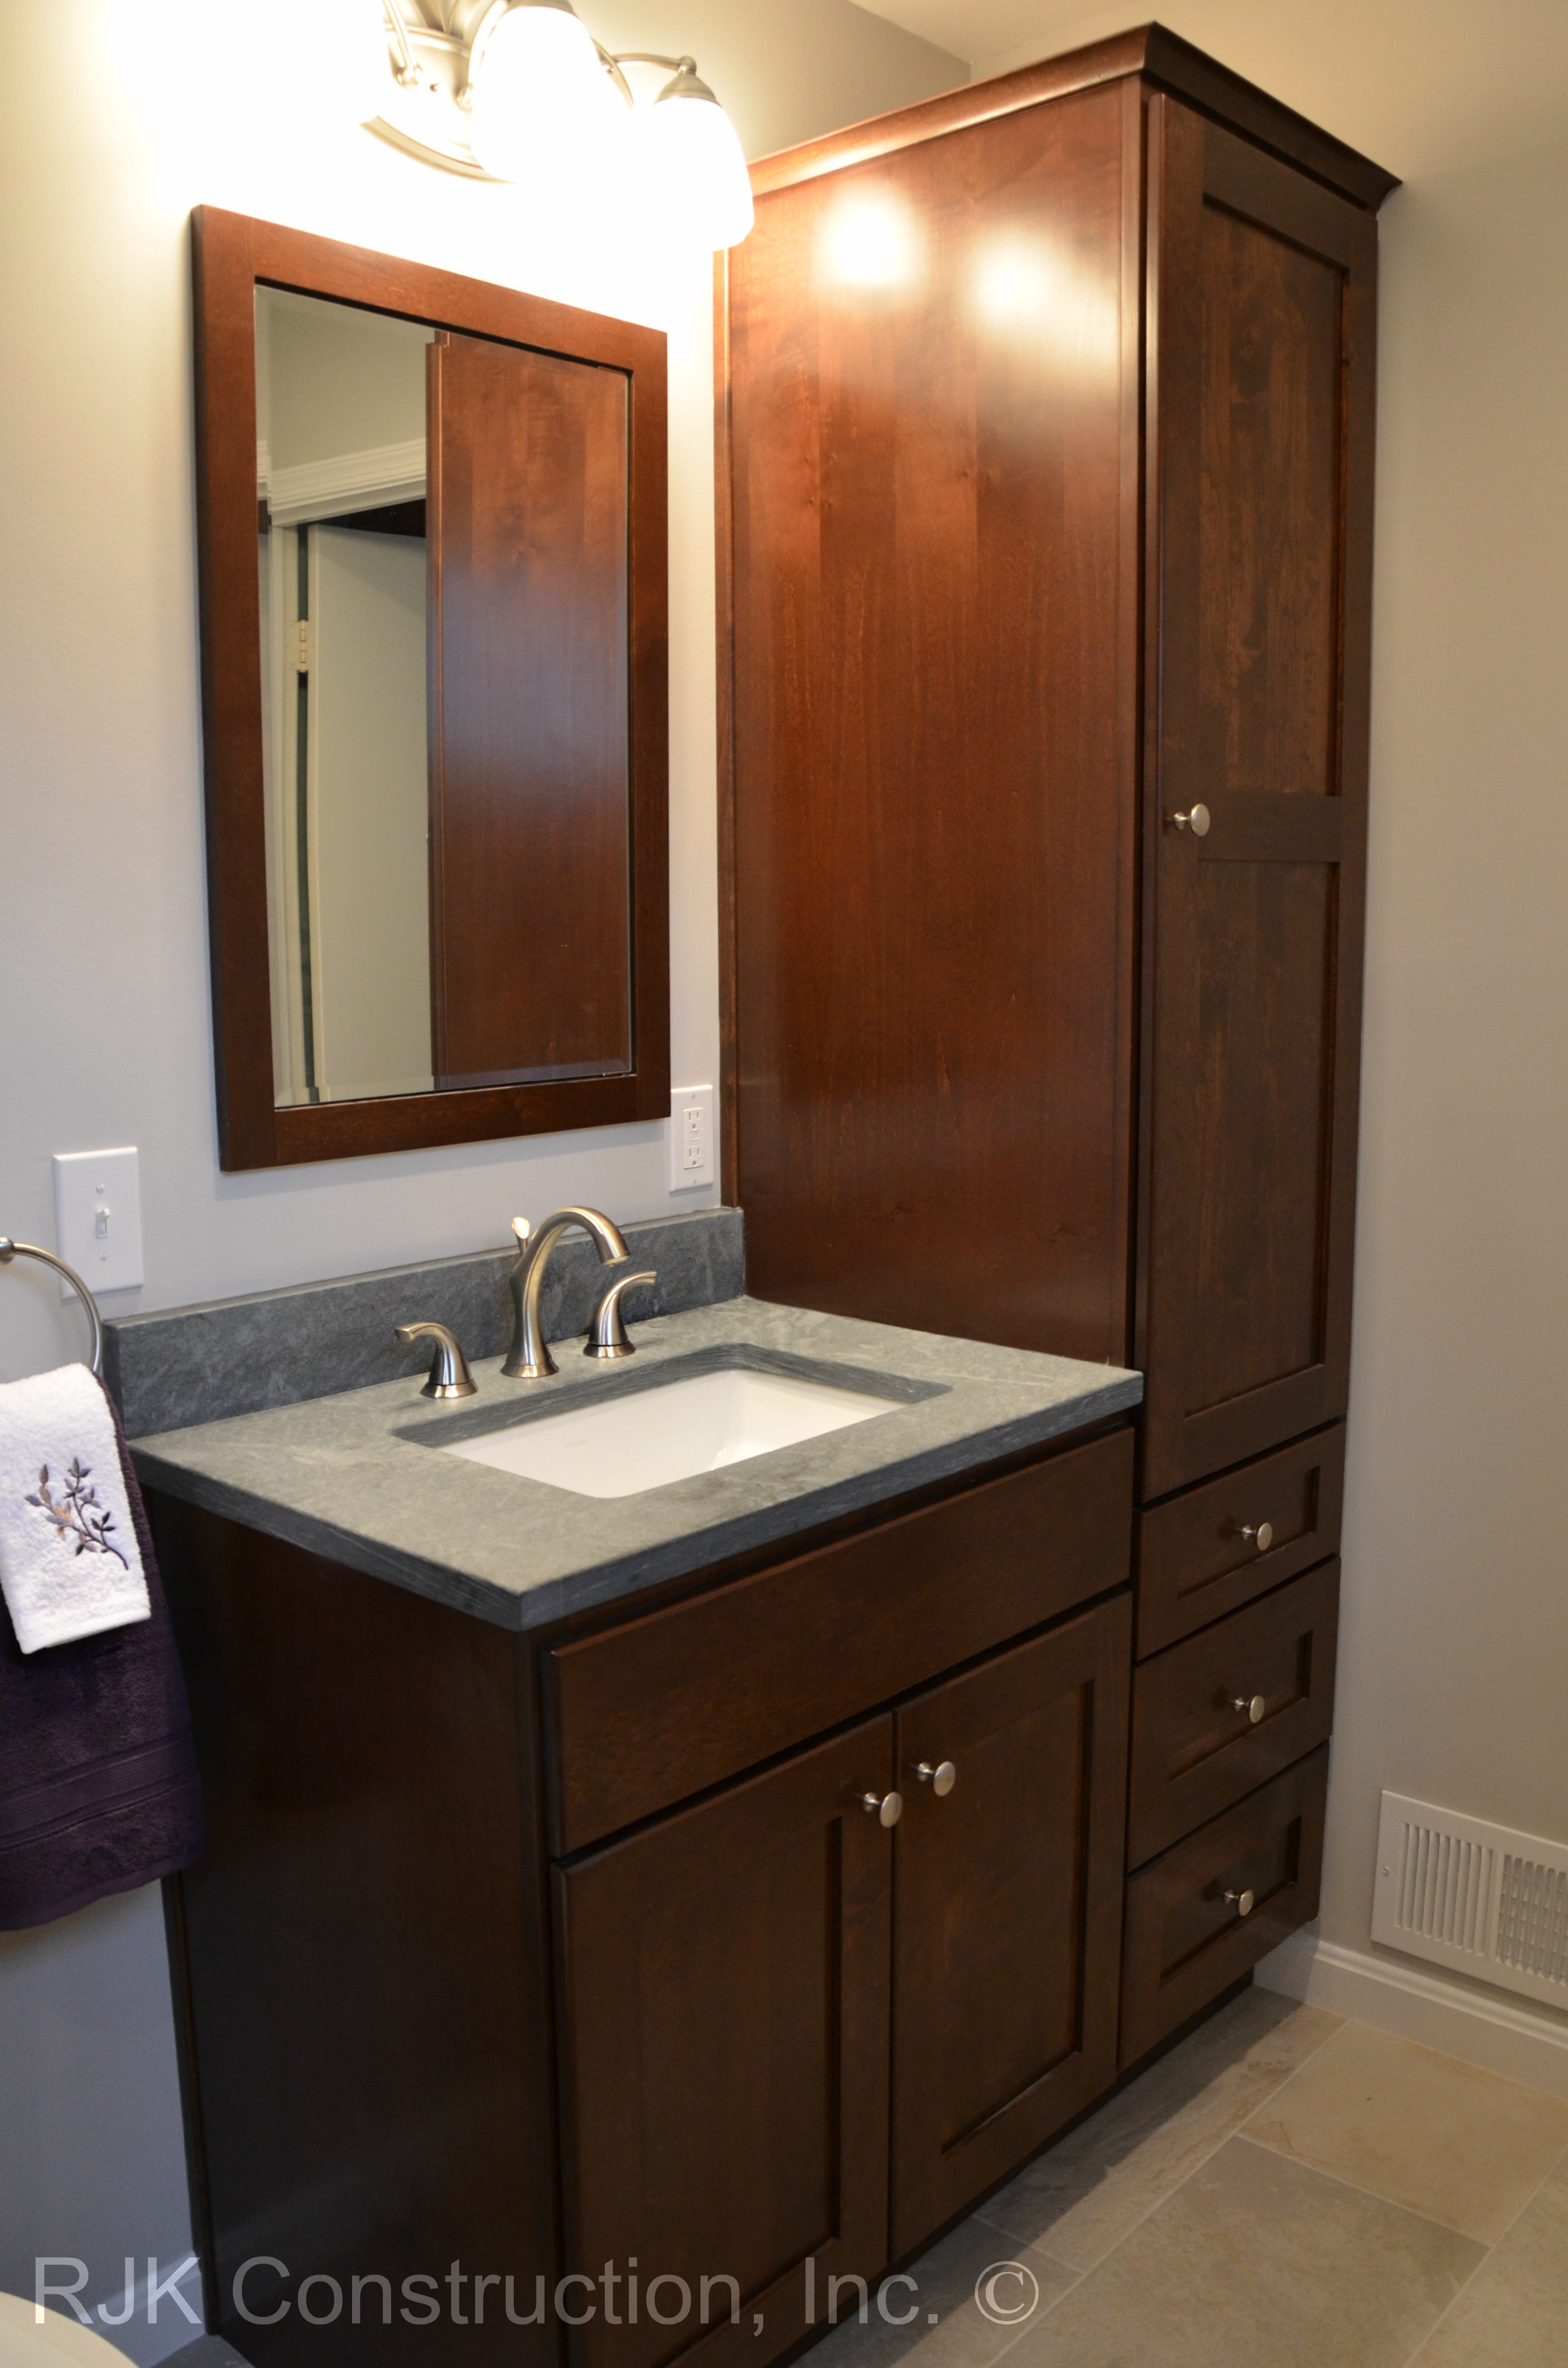 Bathroom Vanities With Cabinets On Side36 inch bathroom vanity with tall side cabinet google search